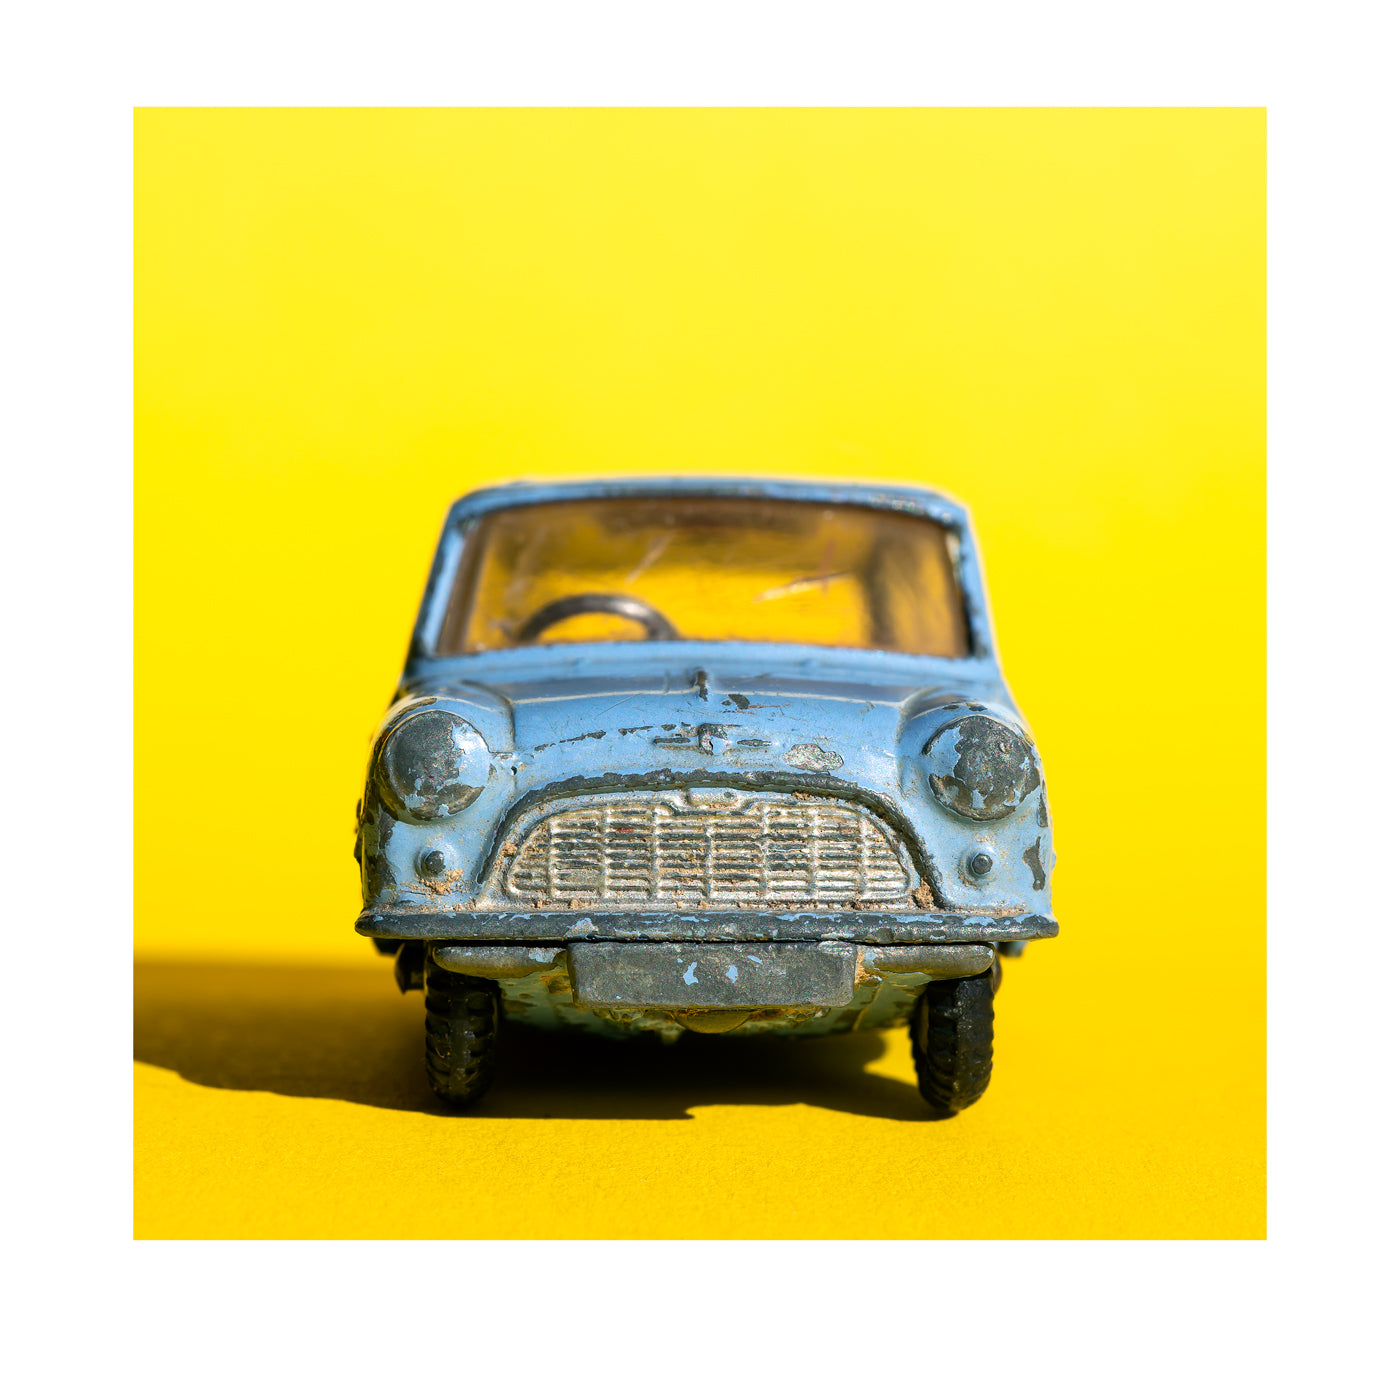 blue mini yellow background